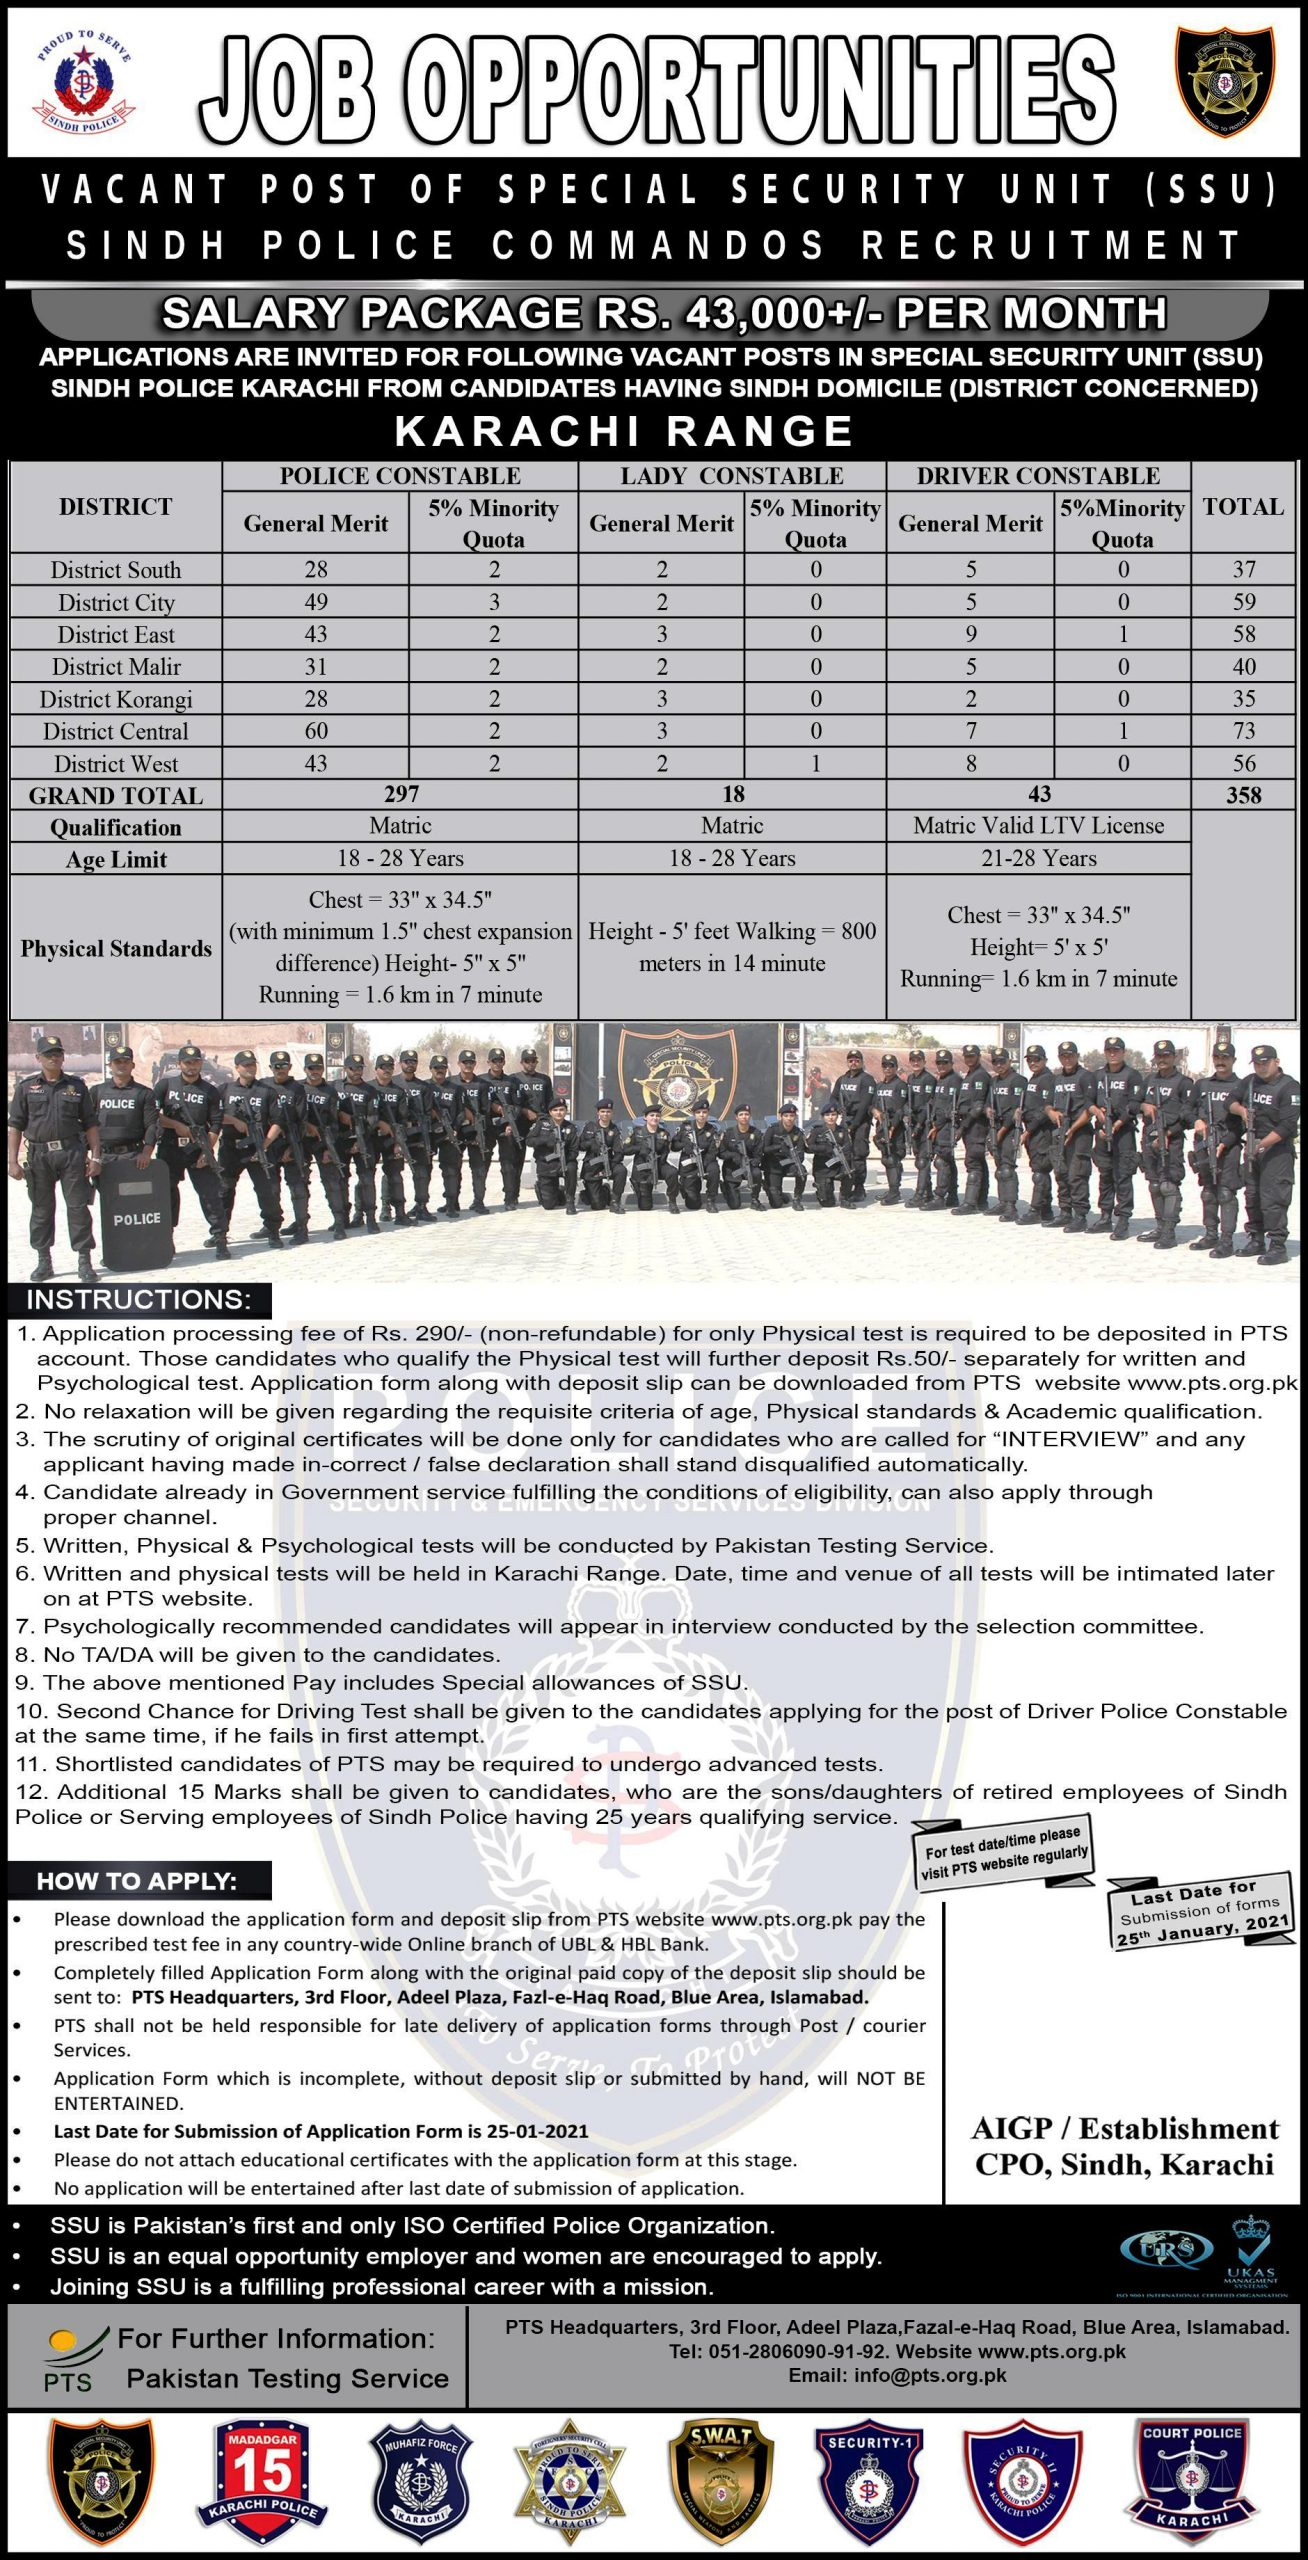 Special Security Unit SSU Sindh Police Jobs 2021 PTS Application Form